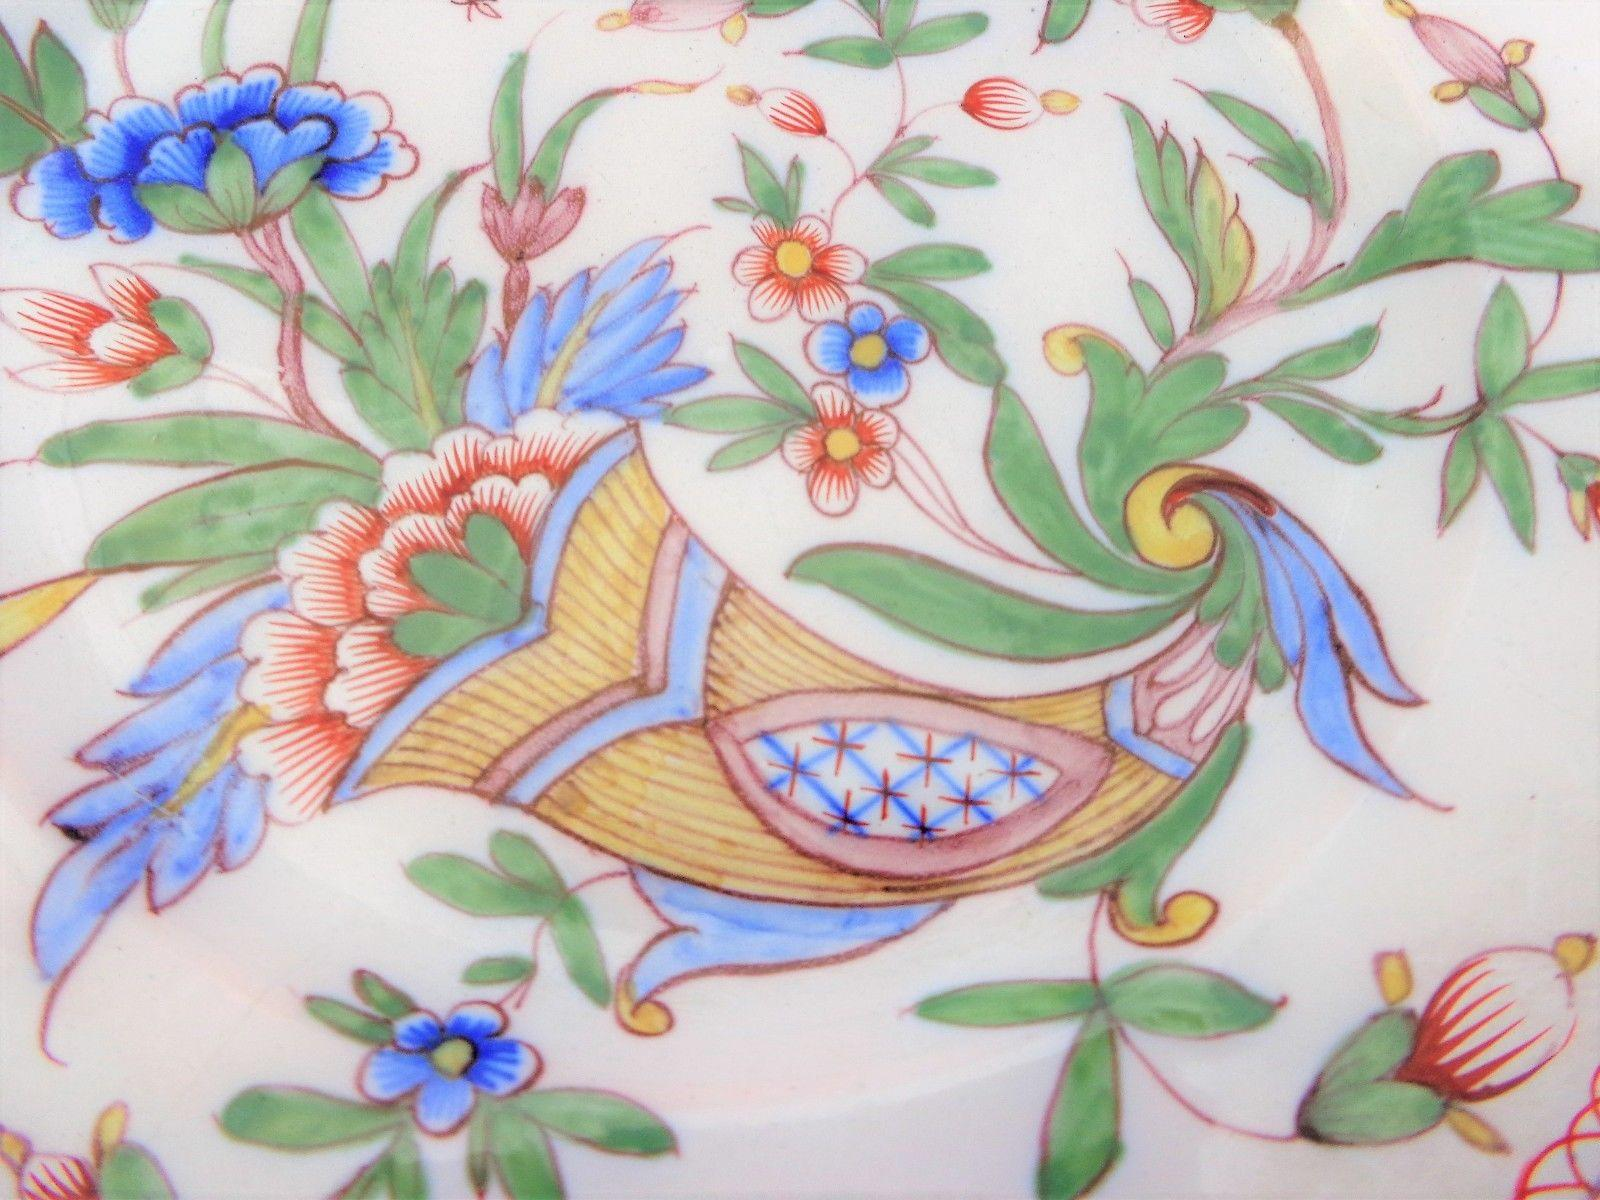 French Faience Plate Hand Painted Cornucopia Horn Plenty Mark MG Antique 19th C